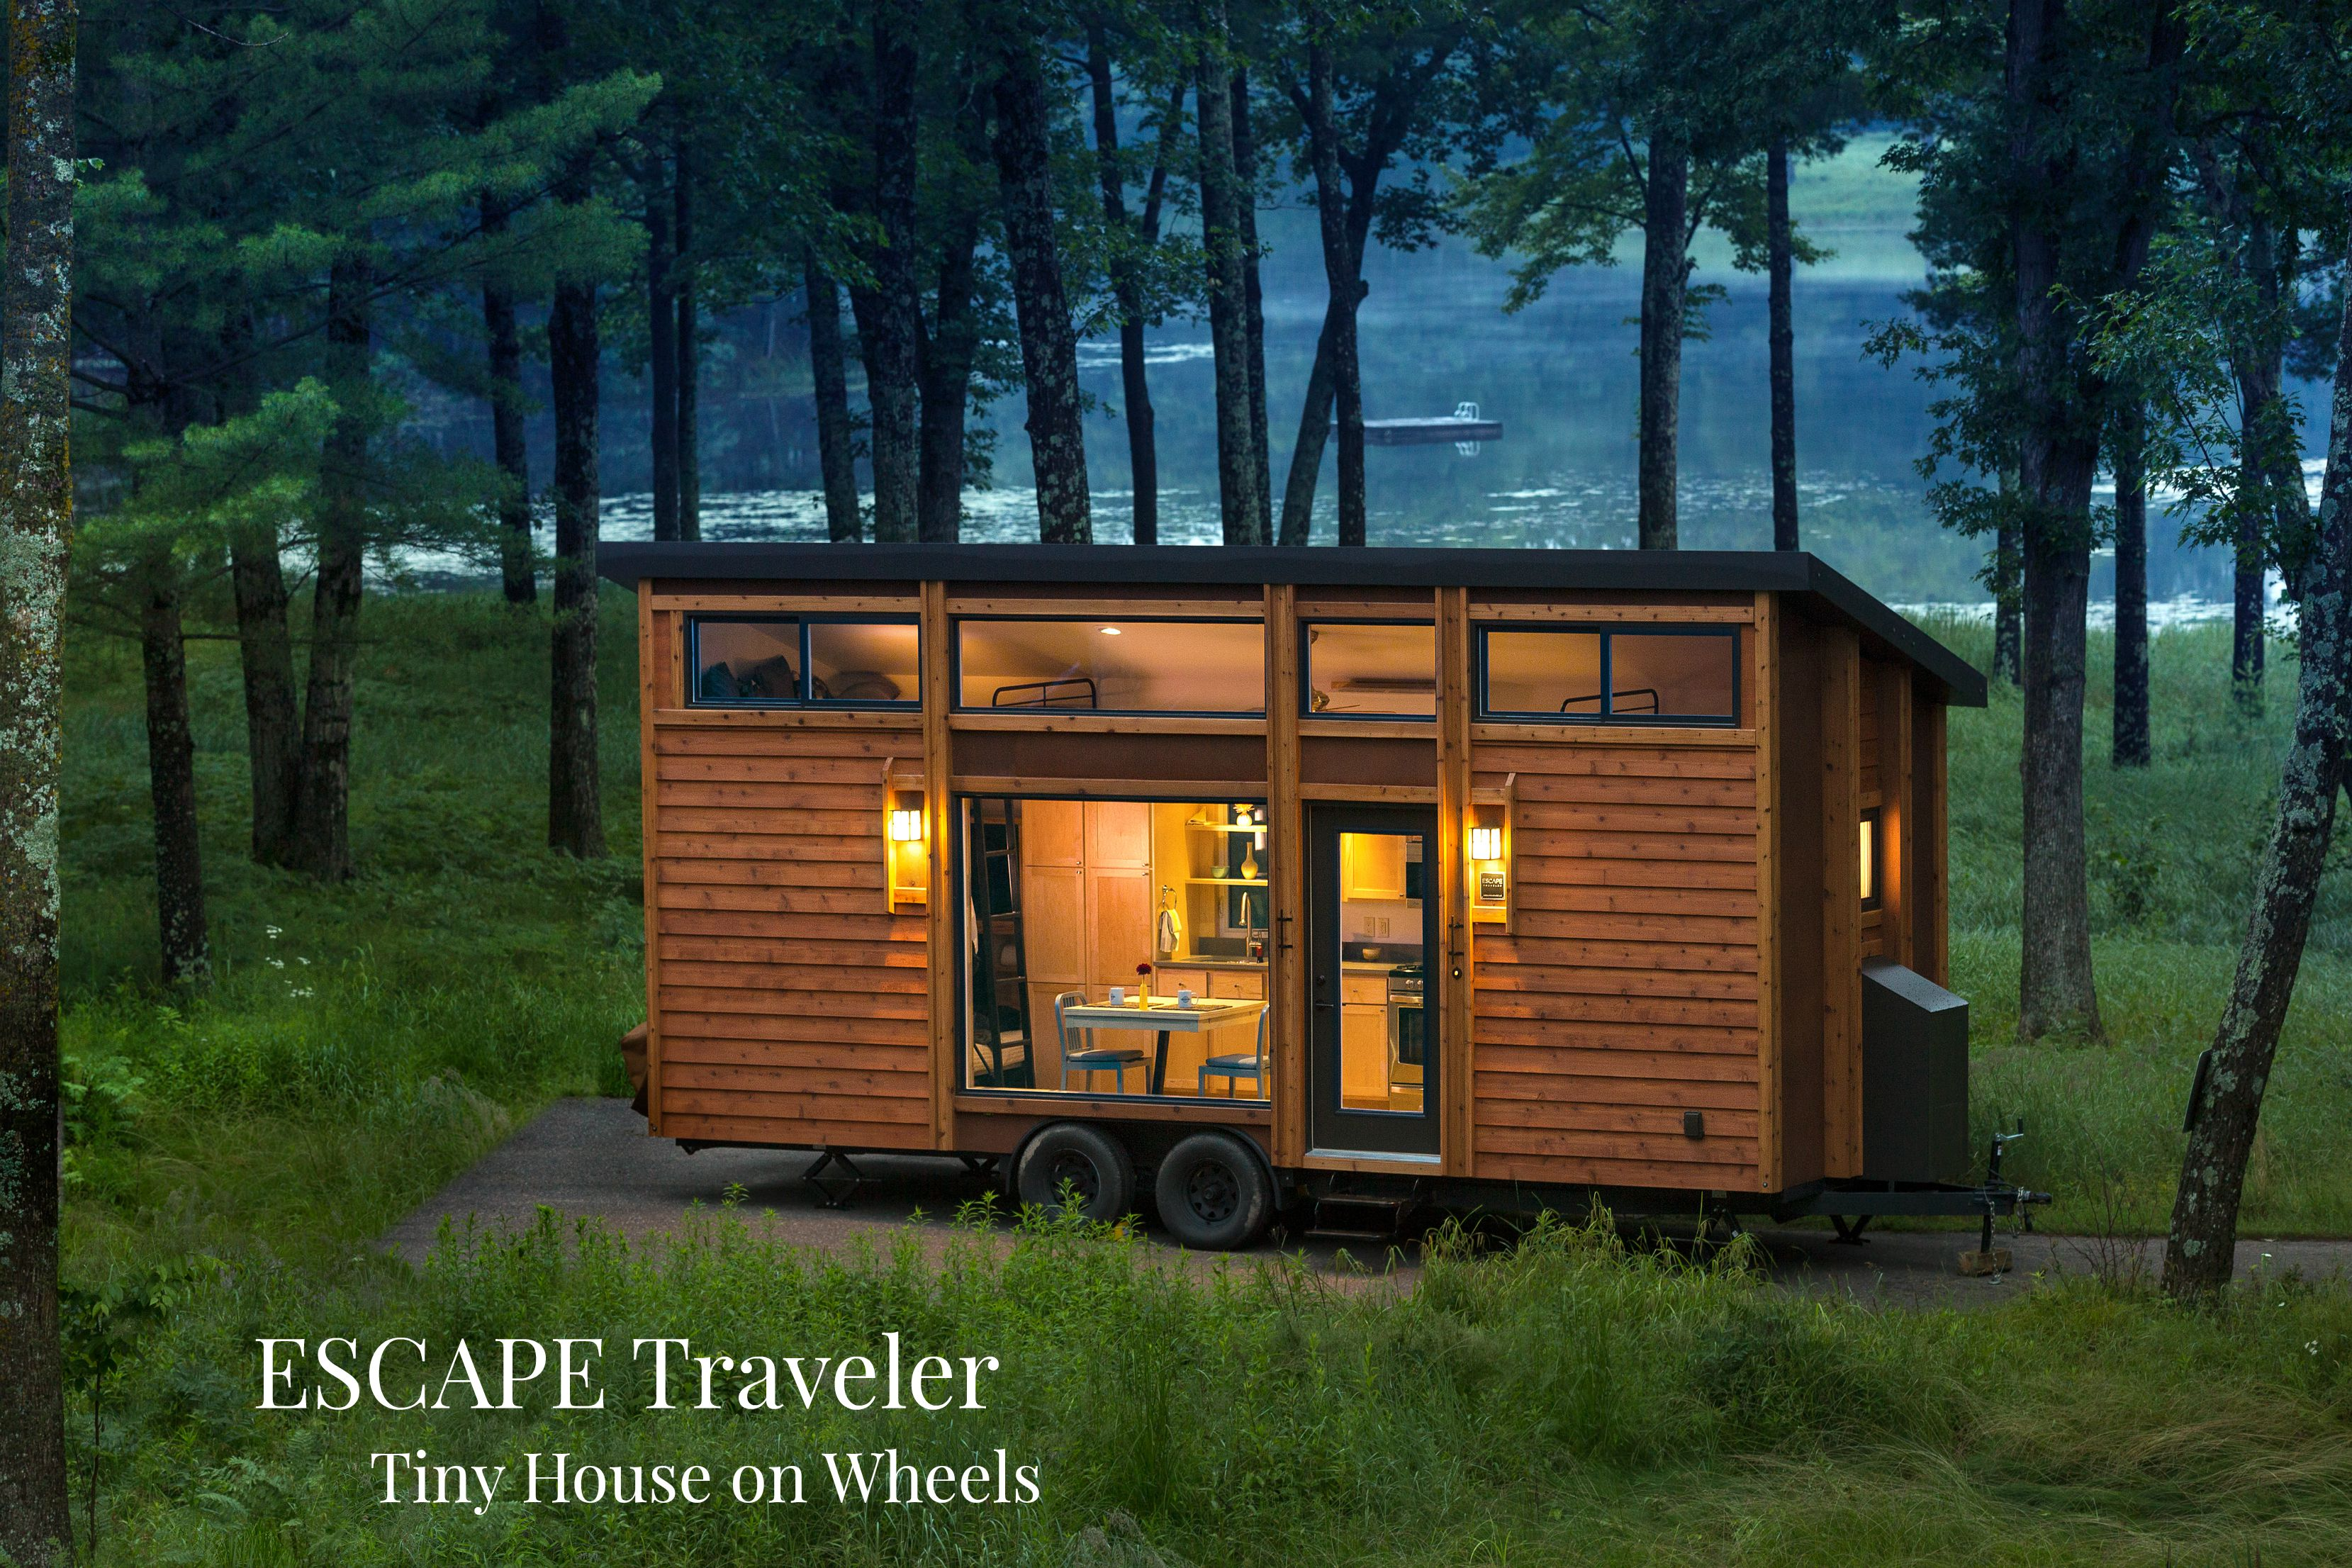 escape traveler the tiny house vacation wonder on wheels - Mini Houses On Wheels